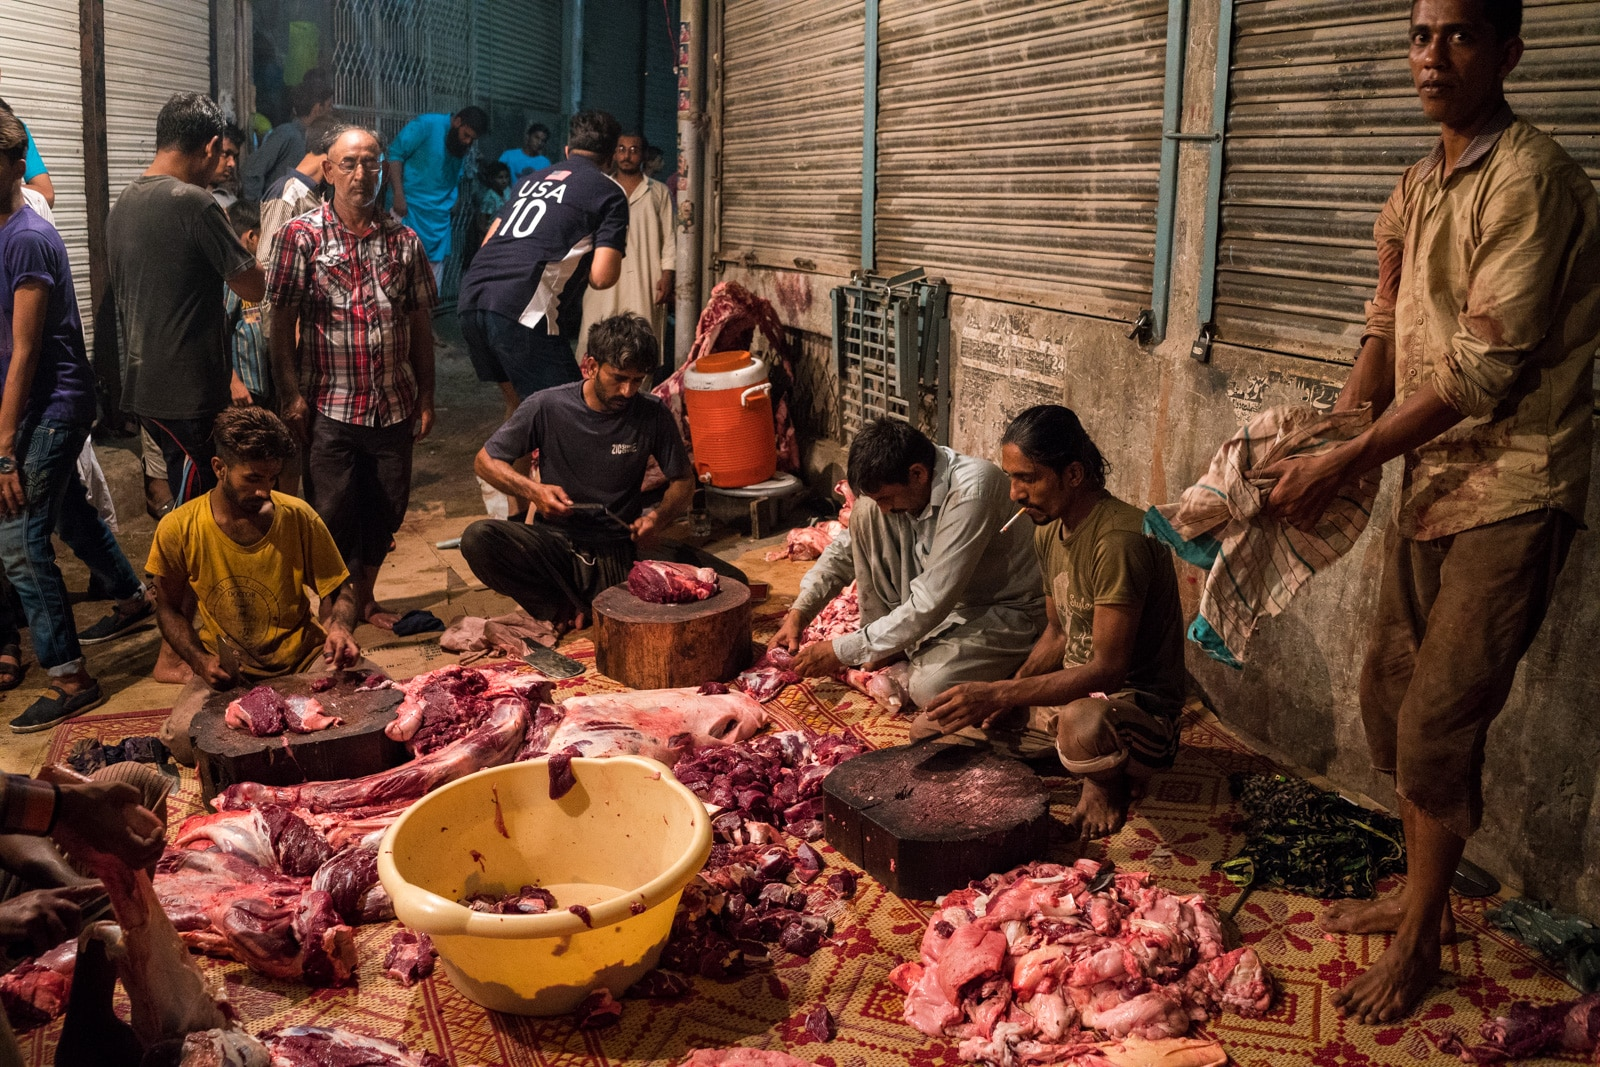 Celebrating Eid al-Adha in Lahore, Pakistan - Men chopping camel meat on the street - Lost With Purpose travel blog